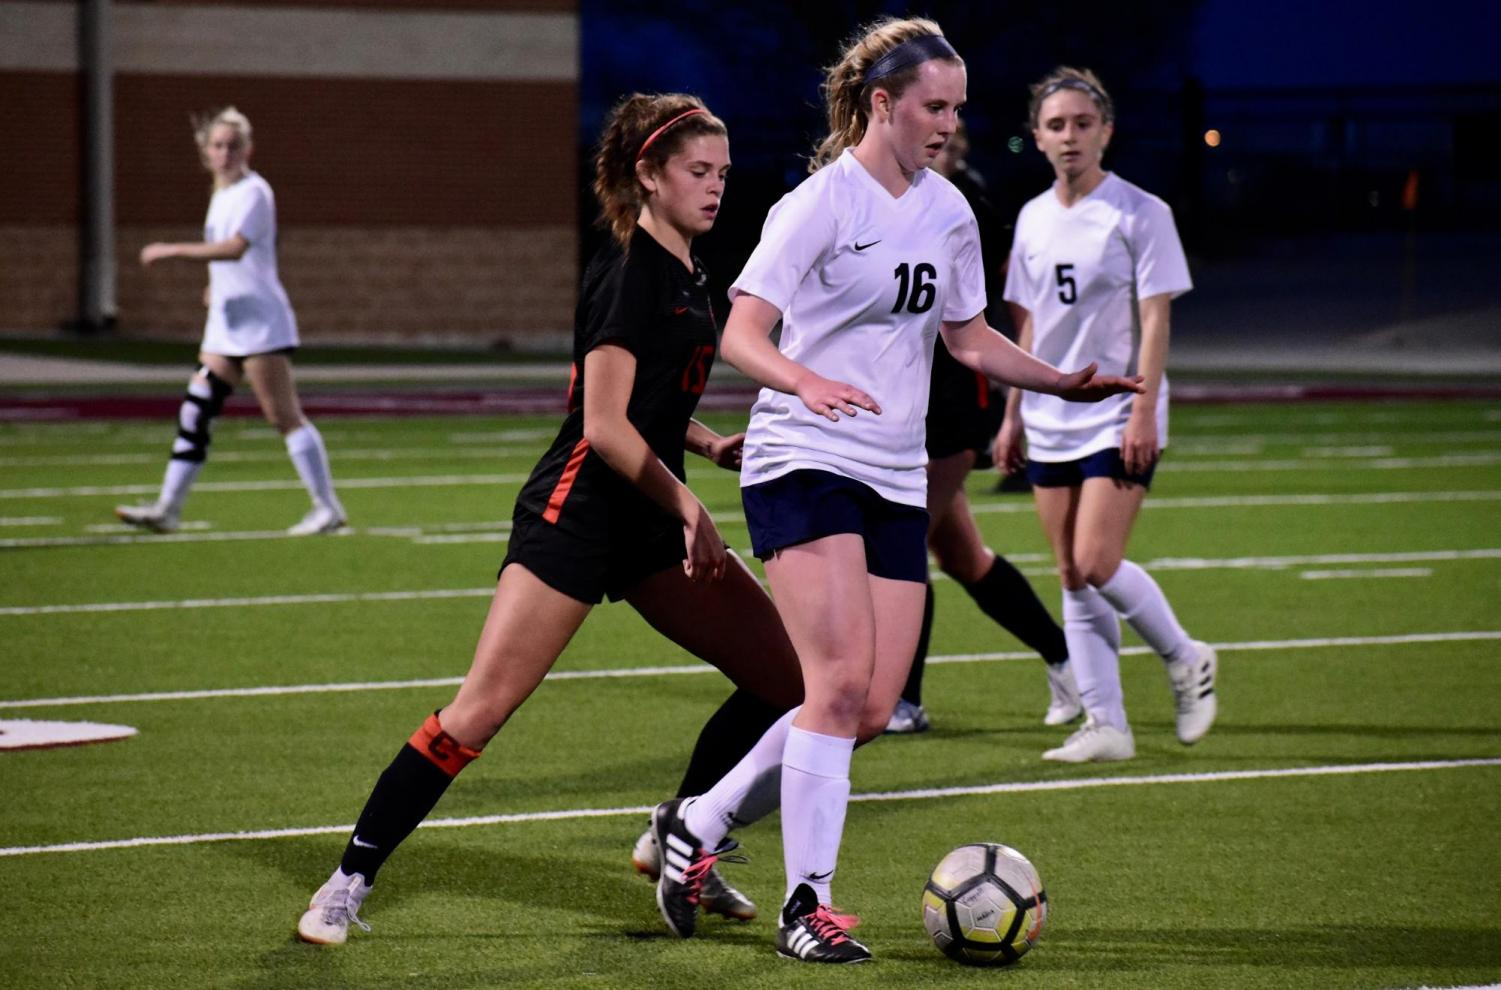 Coppell senior defender Katie Odom attempts to steal from a Keller midfielder last season. The Cowgirls begin their season this Saturday in their first scrimmage.